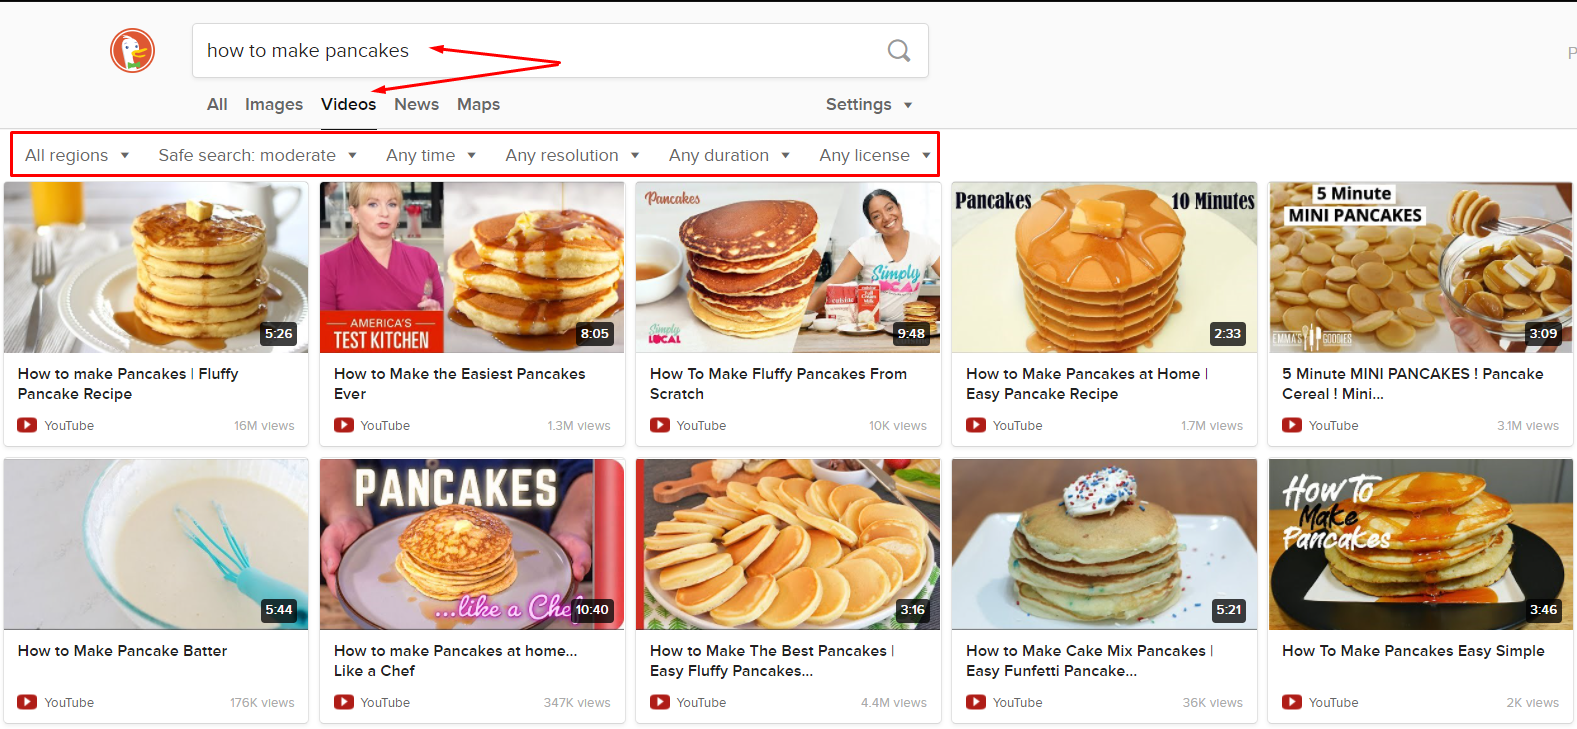 how to make pancakes DuckDuckGo video search engine SERPs and search filters